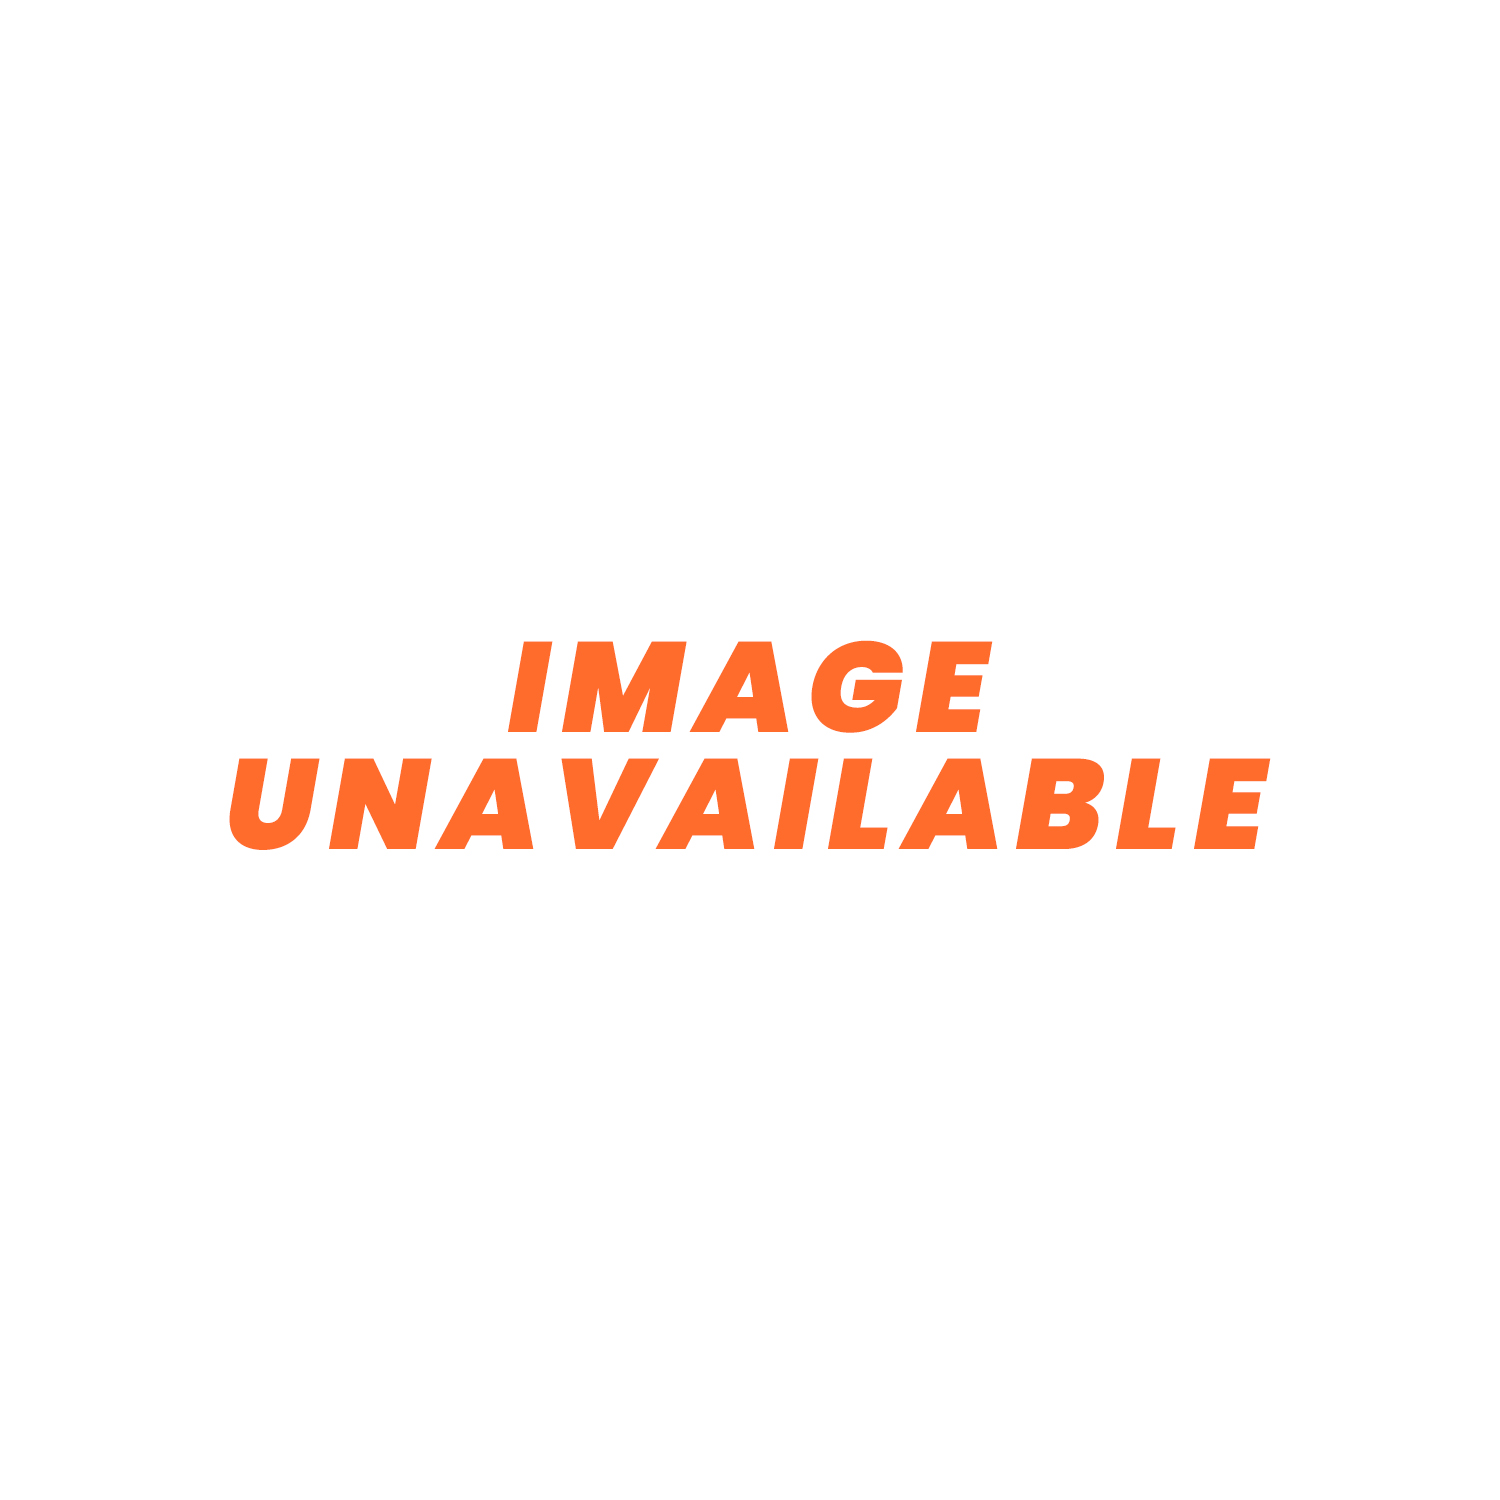 Vw Wire Diagram Nvld - Wiring Diagram